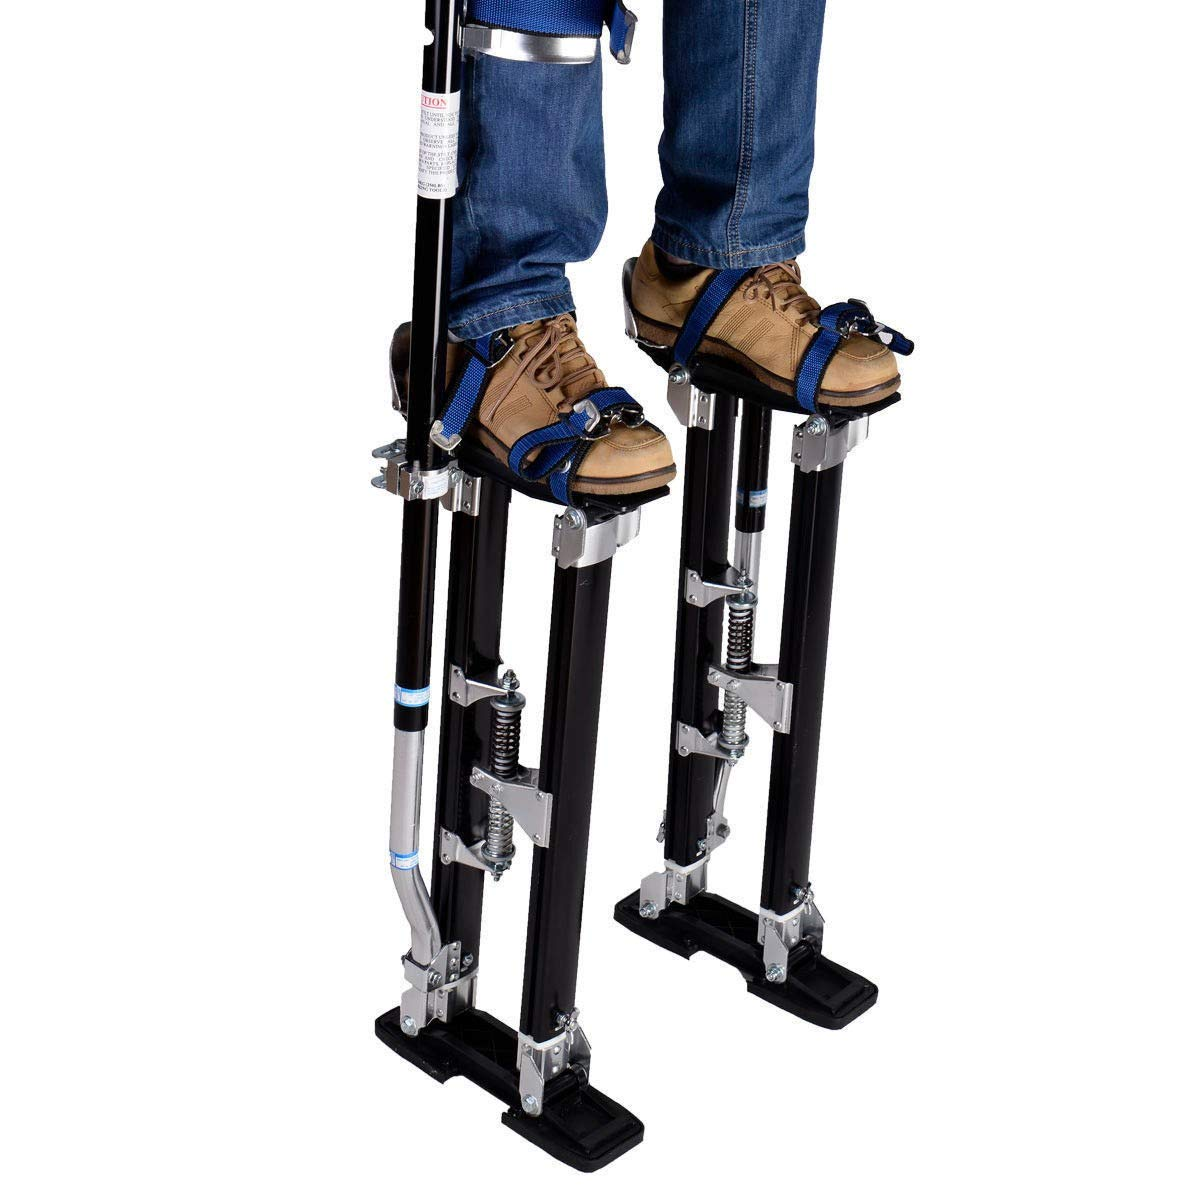 BeUniqueToday Black Height Adjustable 18''-30'' Drywall Aluminum Stilts with Strong Straps, Made of Industrial Grade Aluminum Alloy, Ergonomic Design by BeUniqueToday